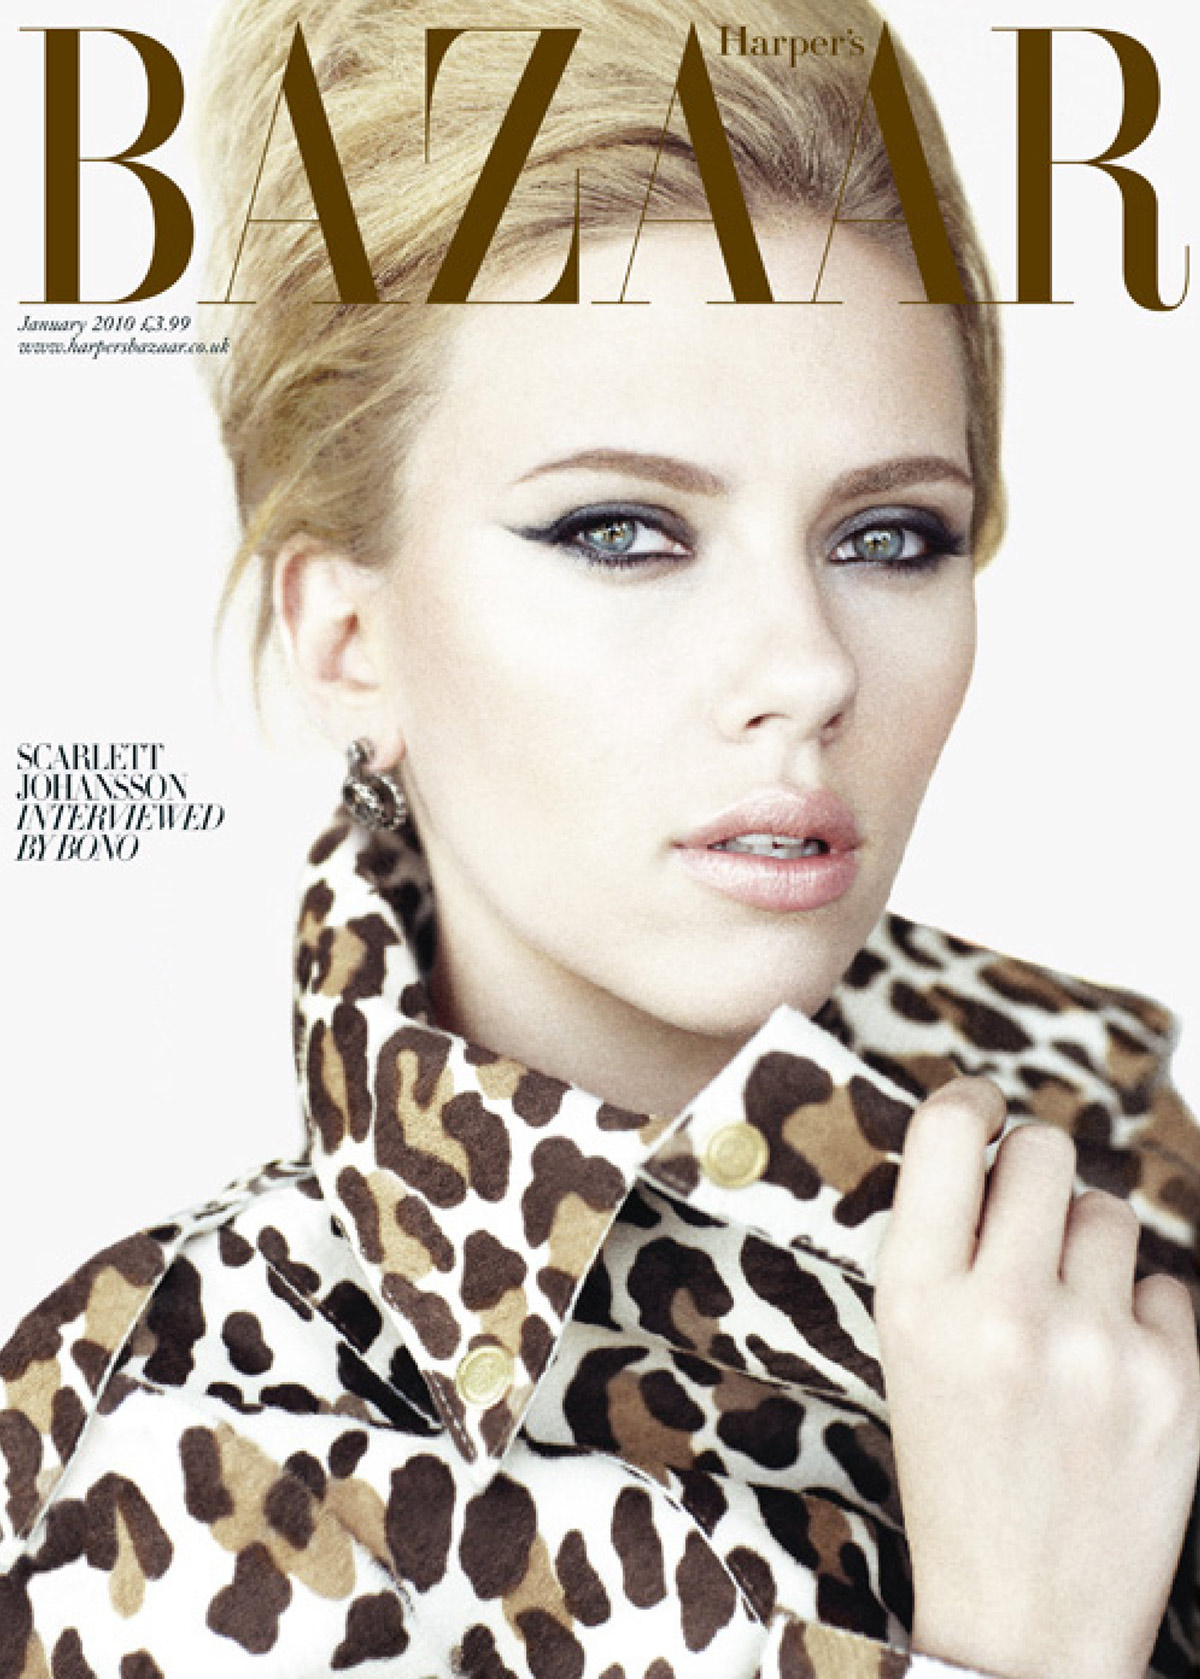 house-of-usher-harpers-bazaar-magazine-16